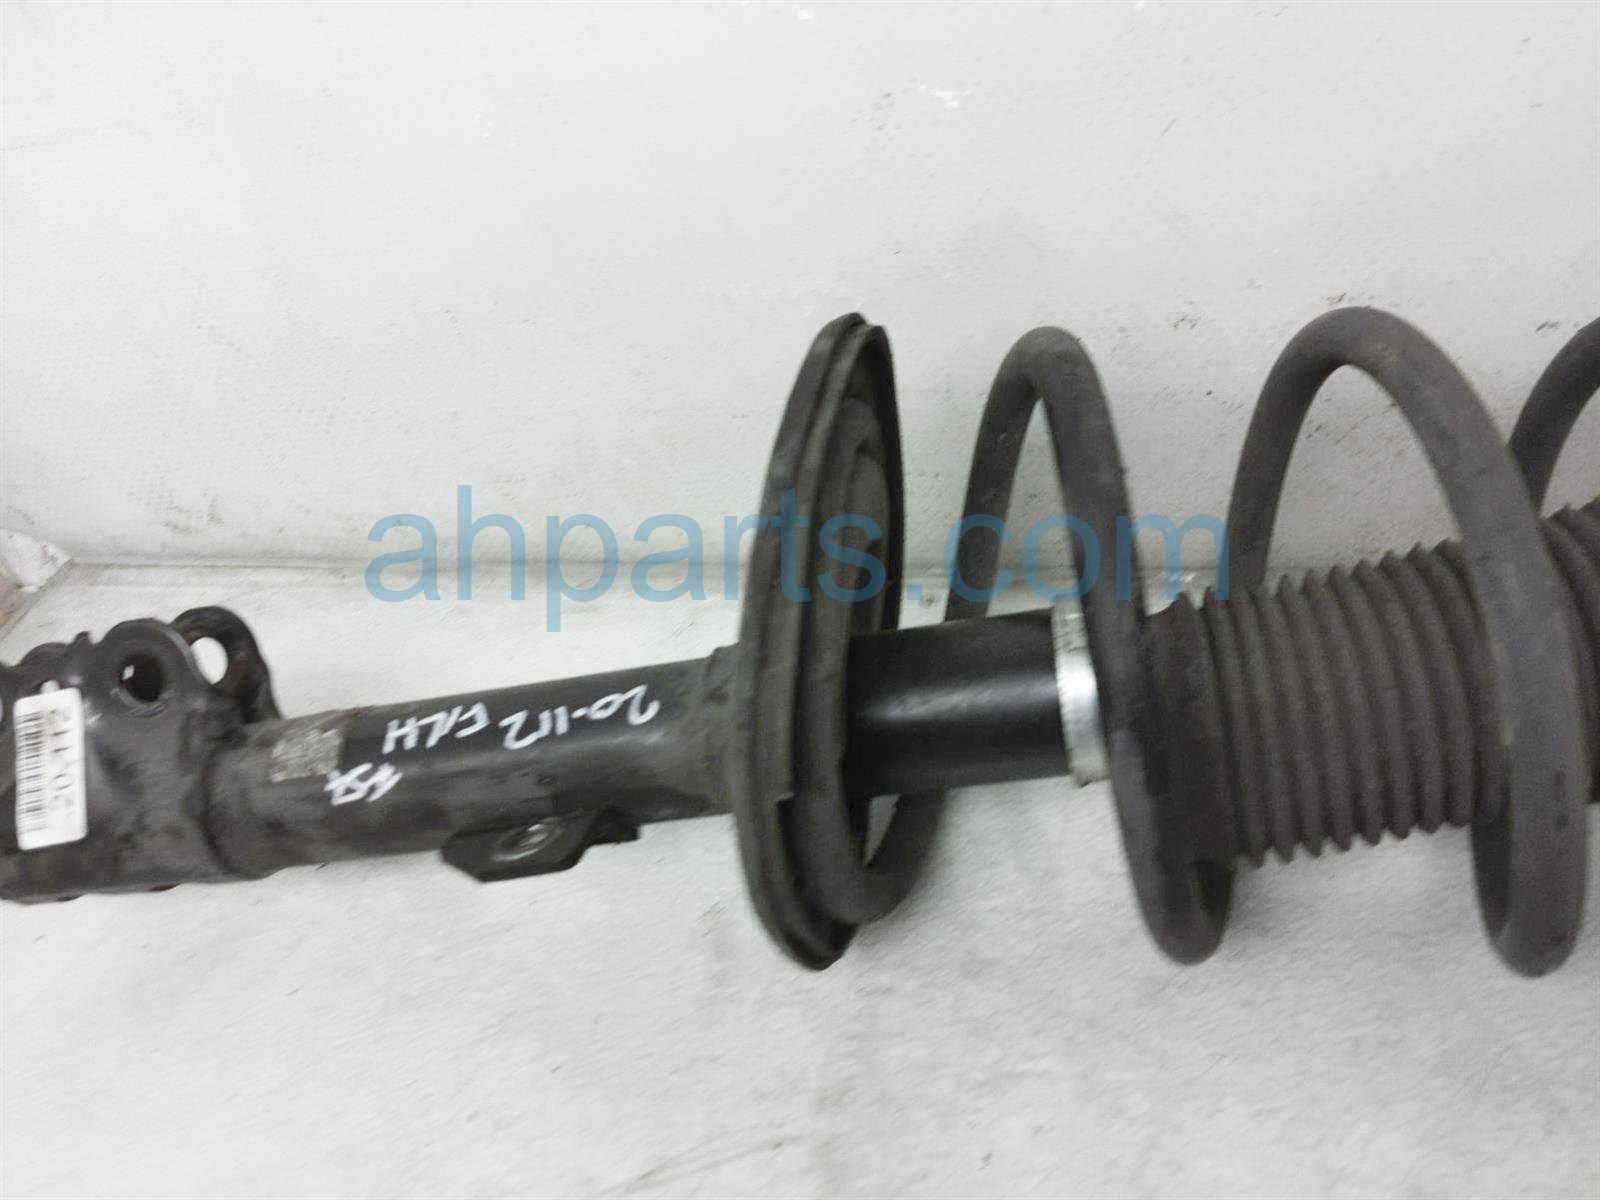 2013 Toyota Sienna Front Driver Strut + Spring 48520 09S70 Replacement